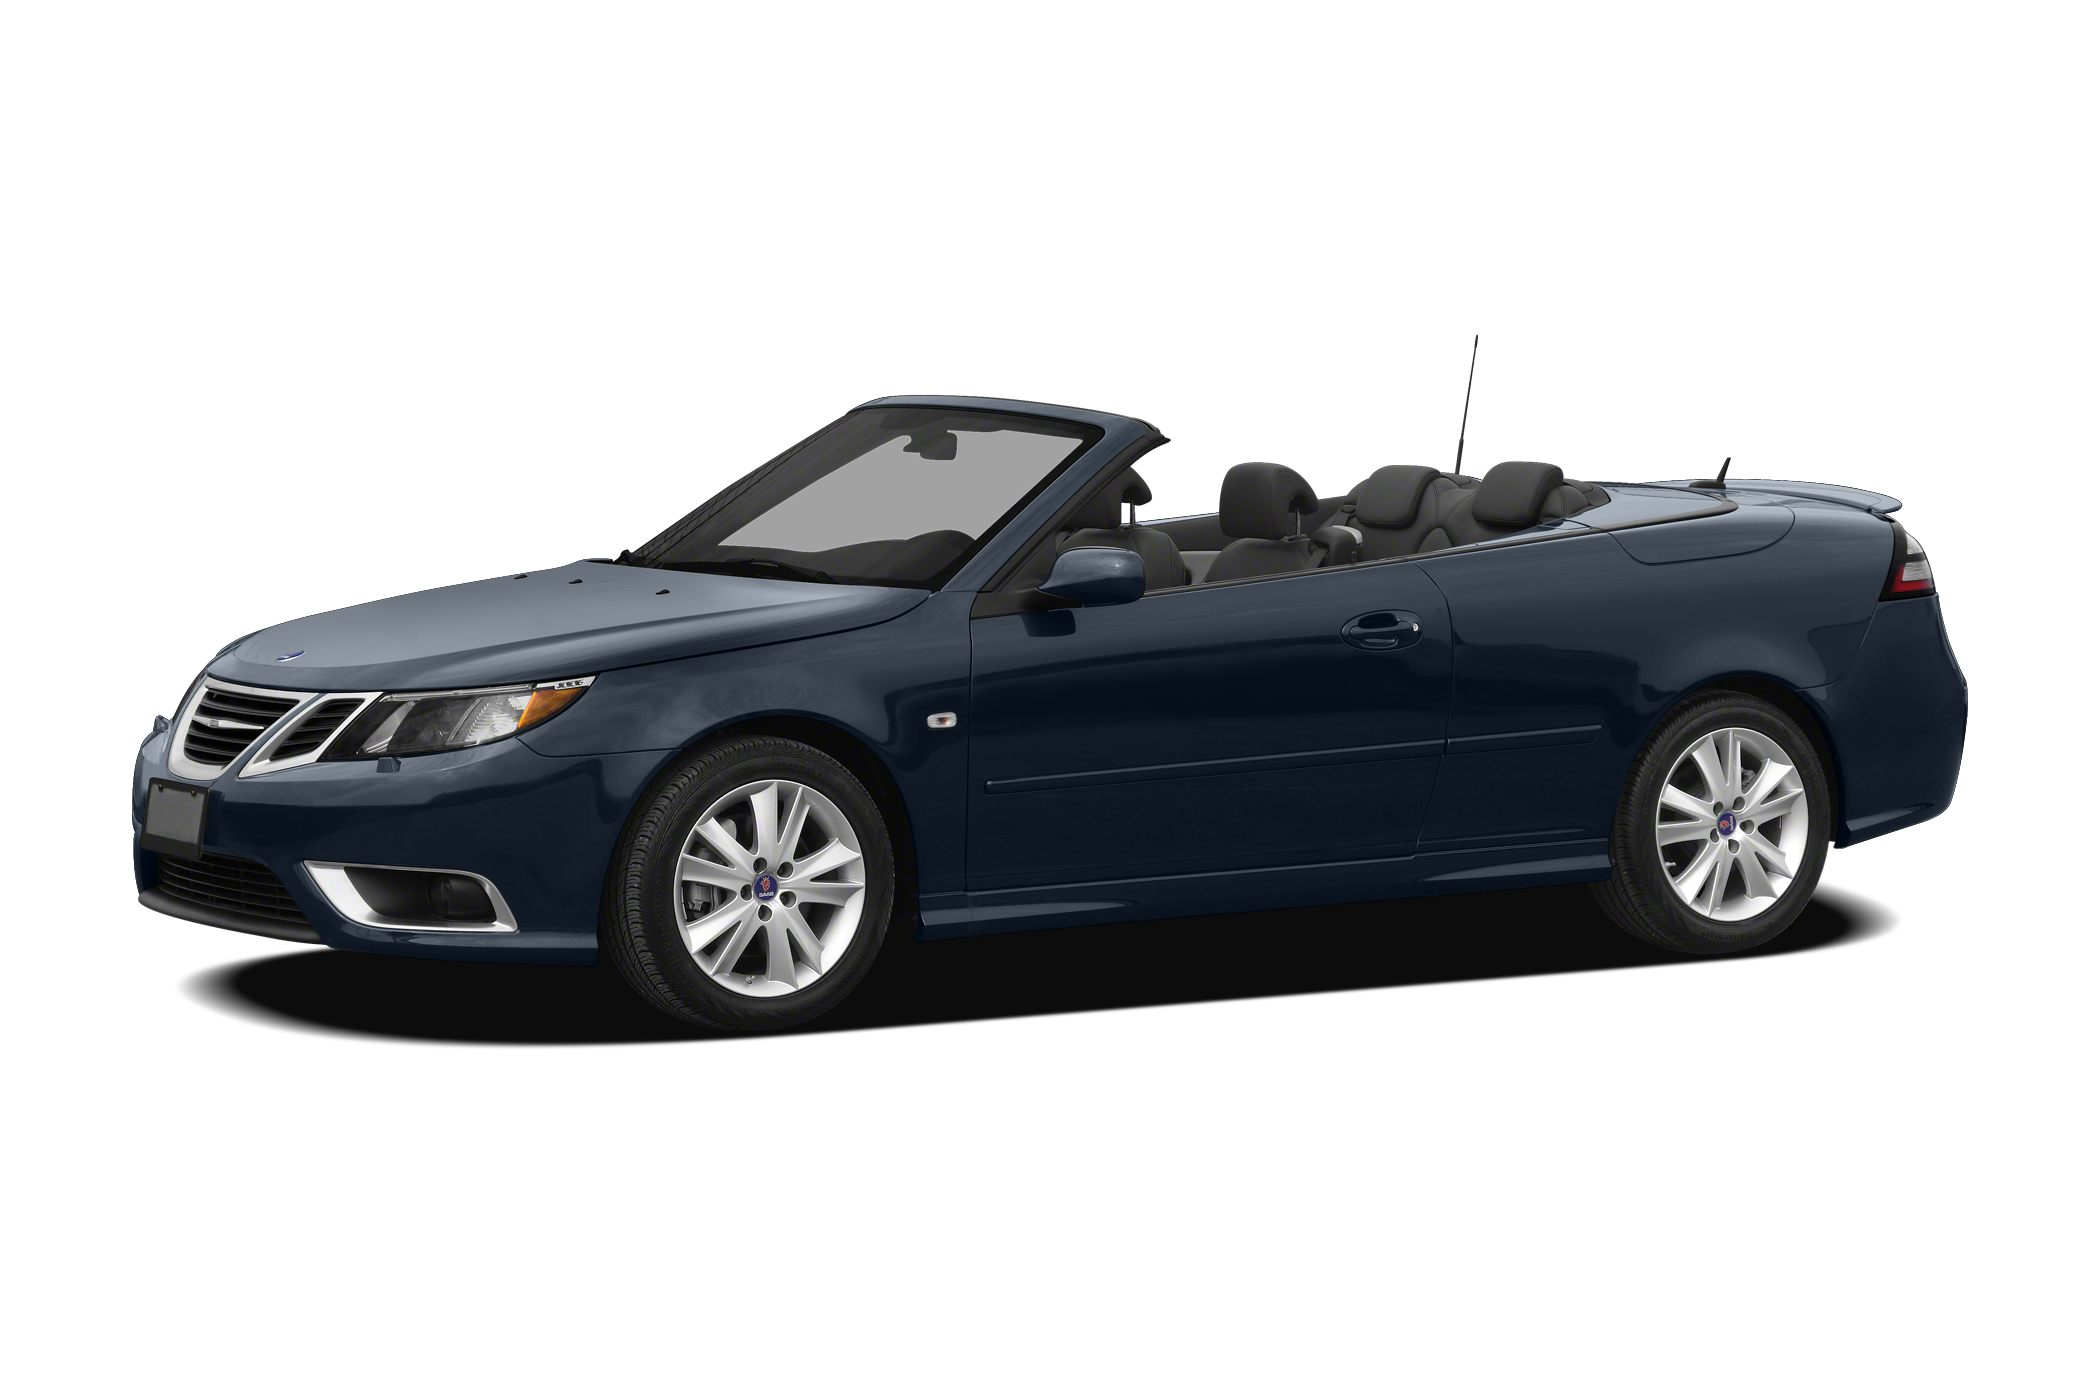 2011 Saab 9-3